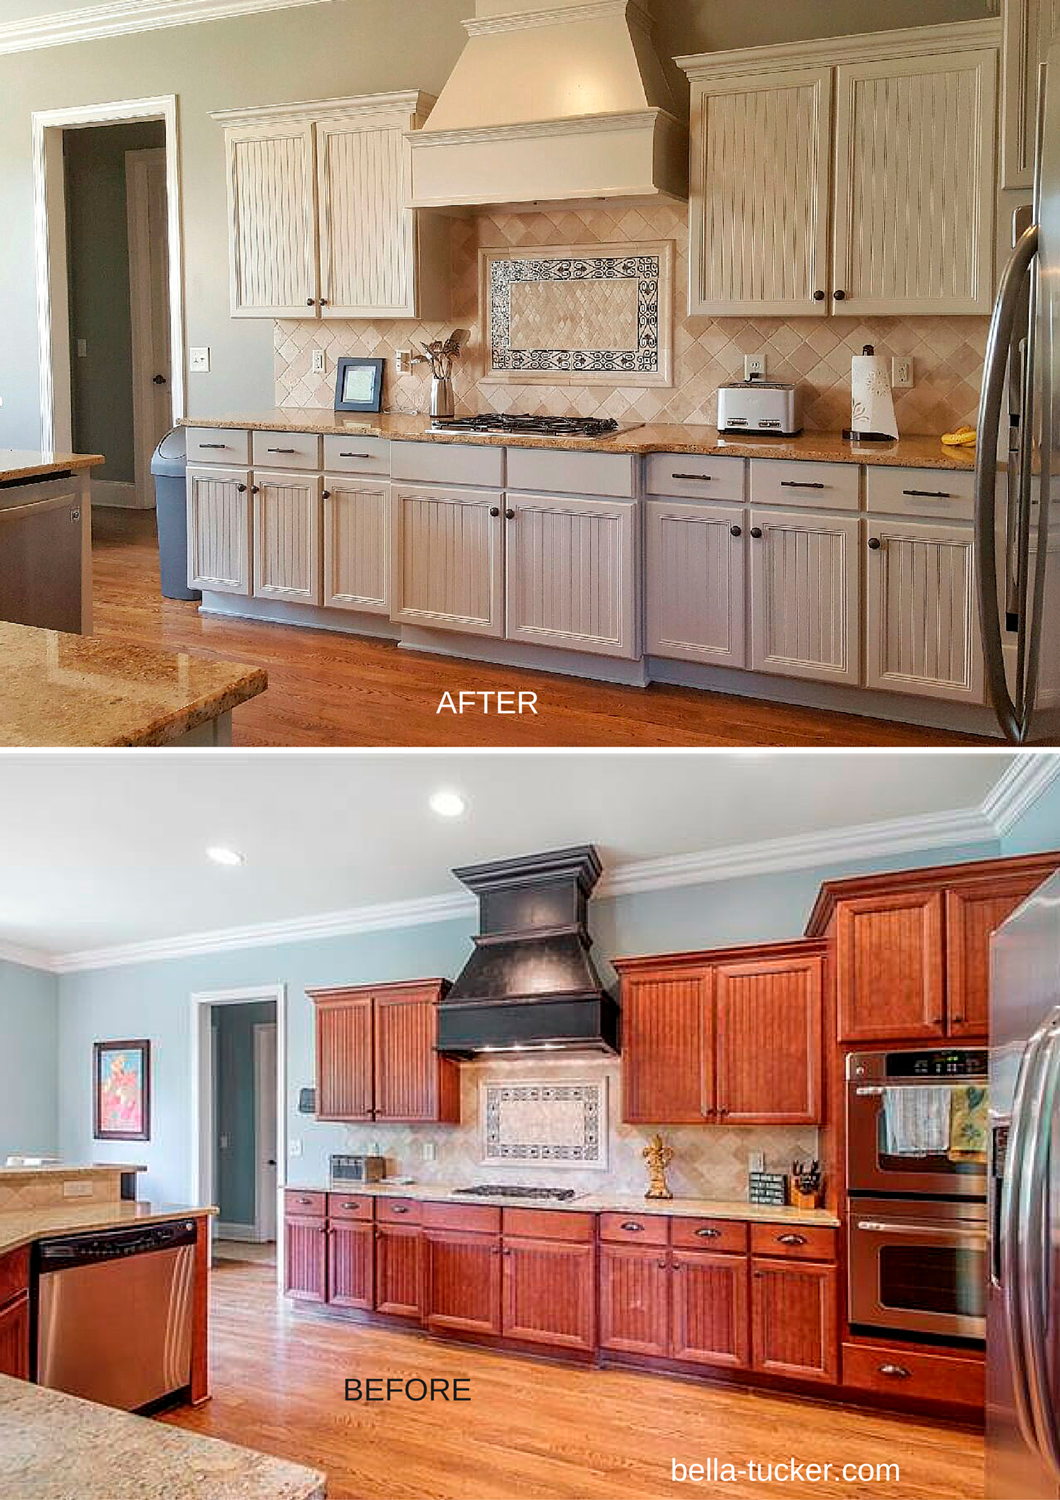 before and after photos spray painting kitchen cabinets Kitchen Cabinet Painting Franklin TN before and after